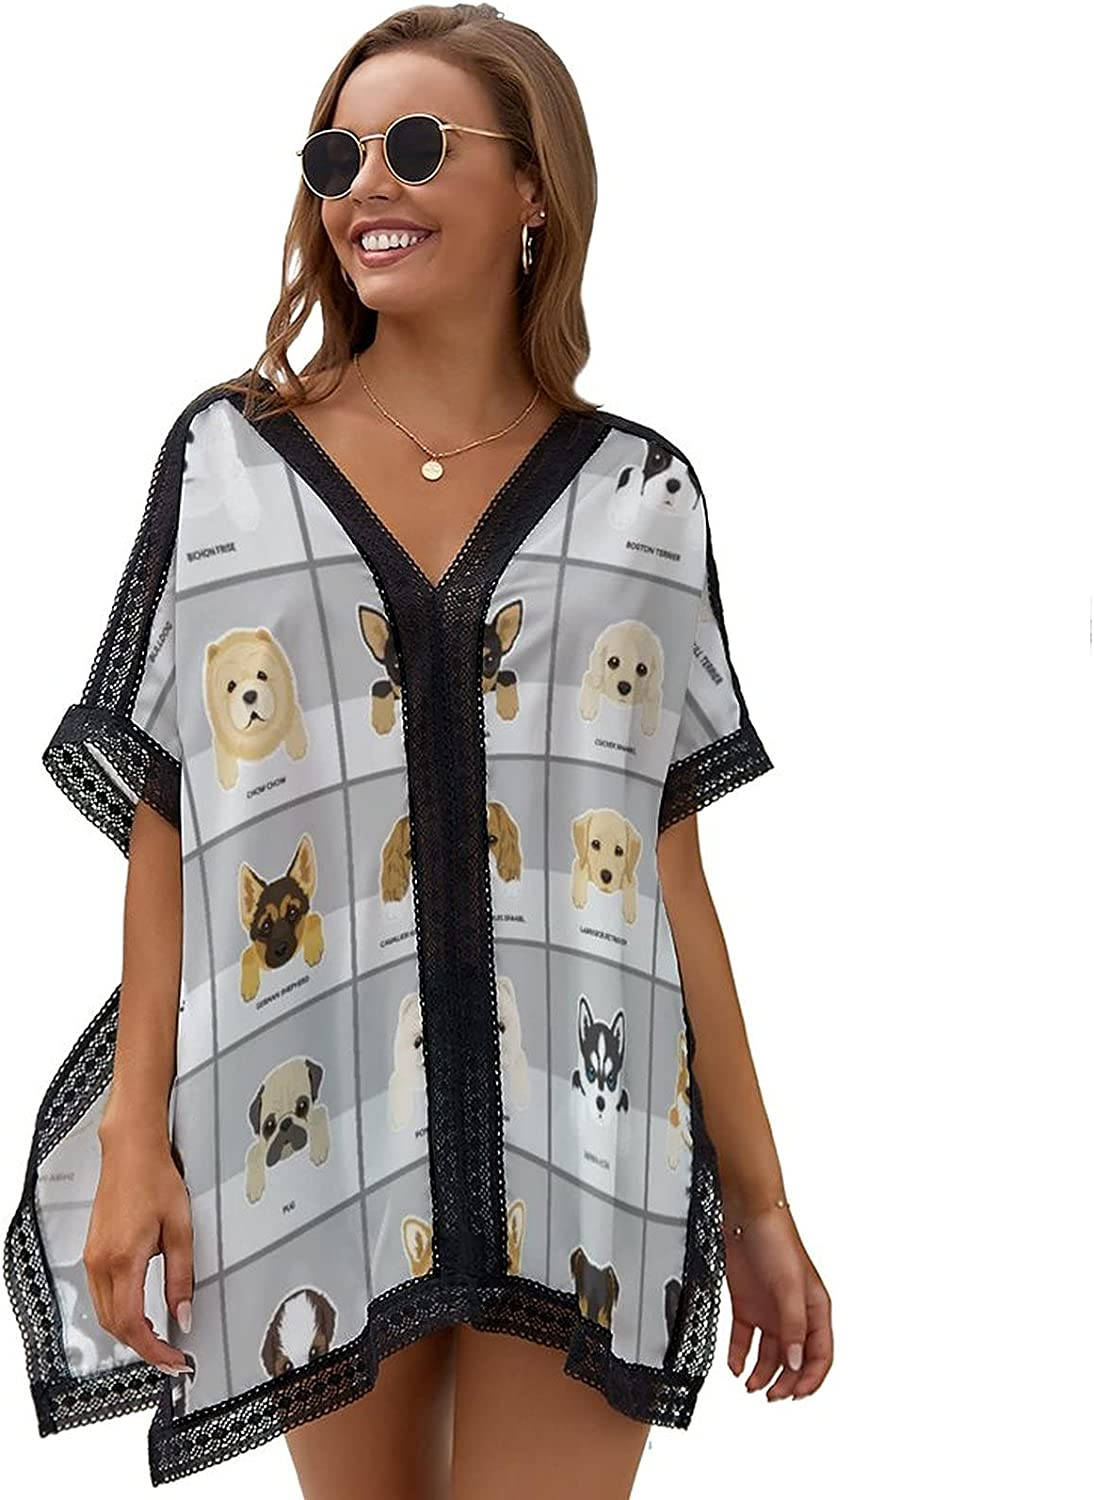 llzlhz Women's V-Neck Beach Cover up Loose Swimsuit Bohemian Sleeve Coverups One Size